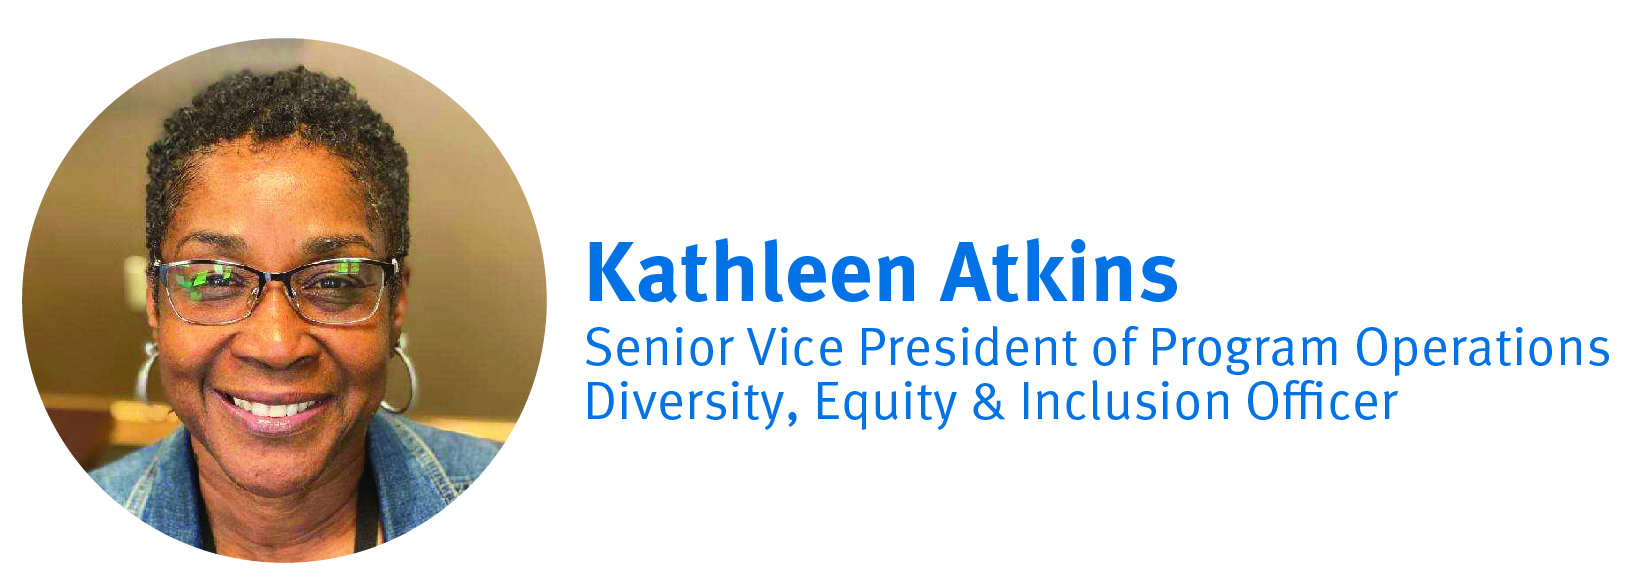 Kathleen Atkins  | SVP, Program Operations & Diversity, Equity & Inclusion Officer